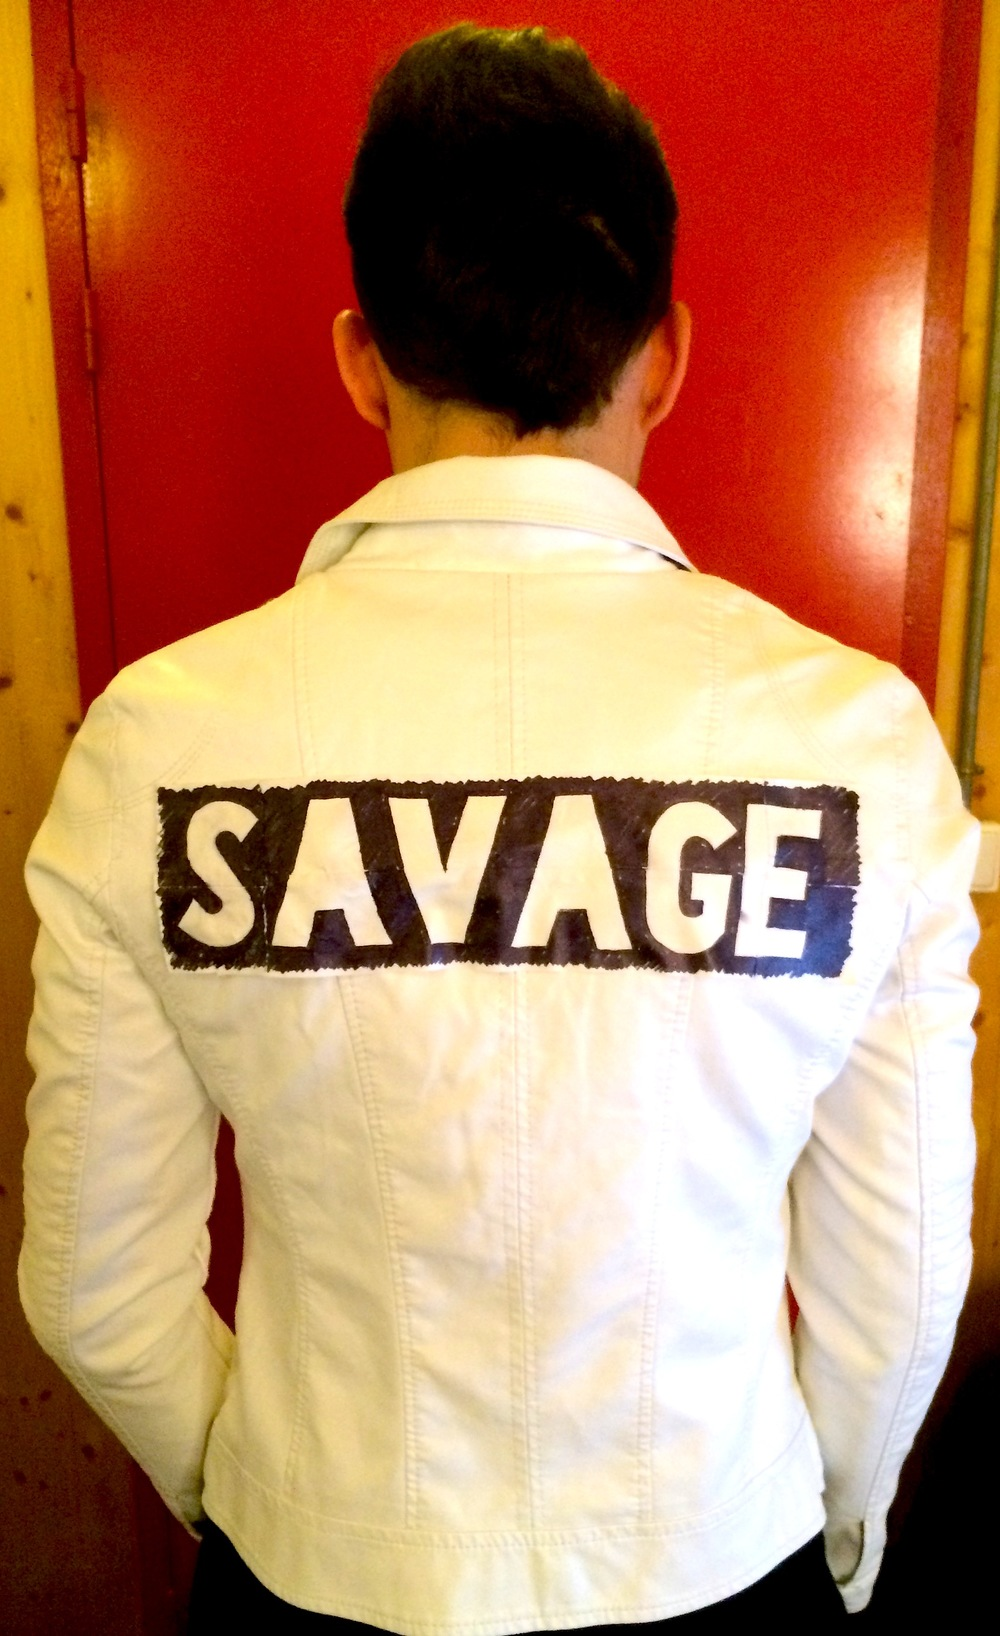 SAVAGE JACKET.JPG